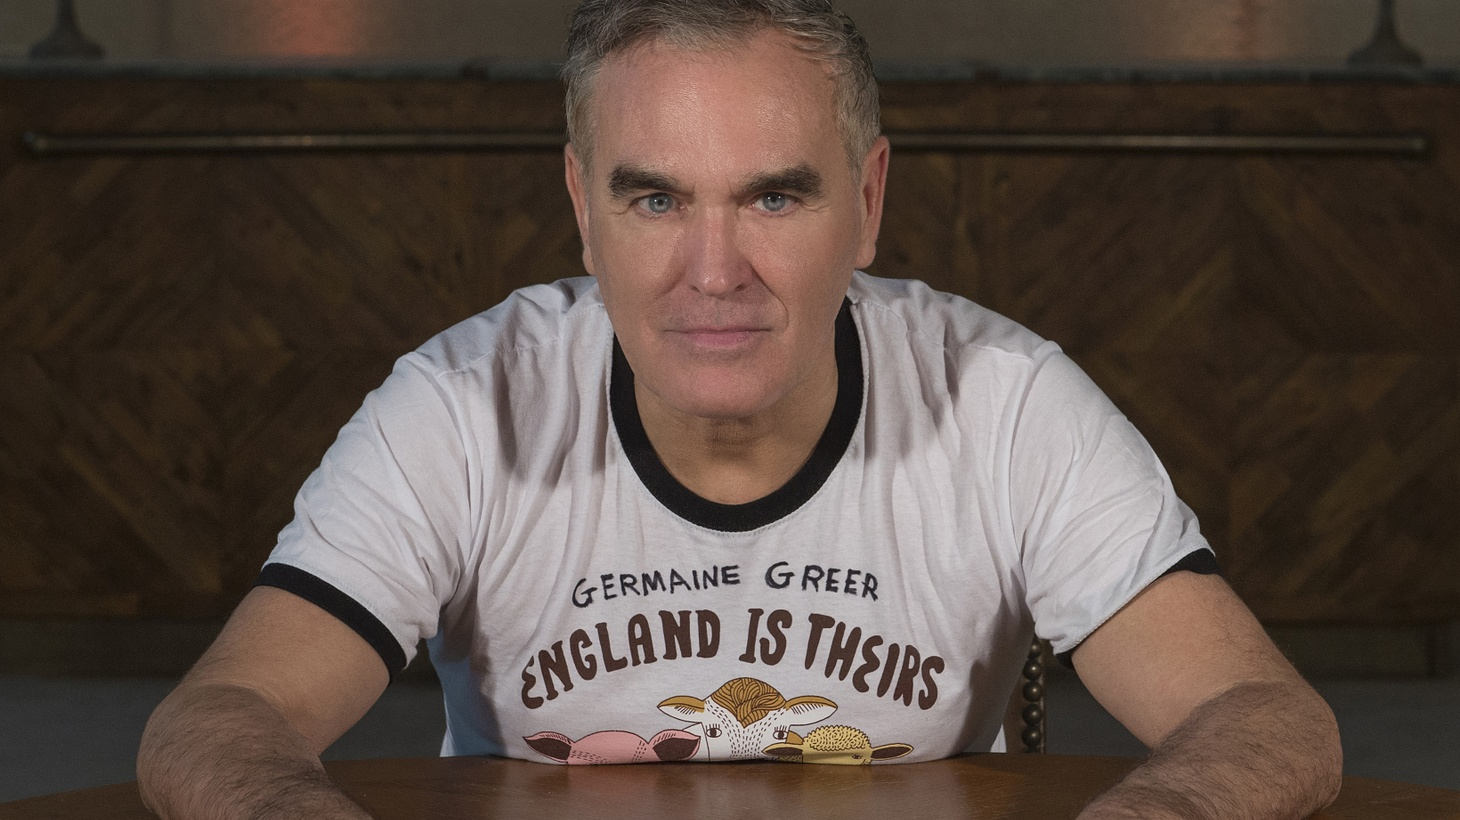 Morrissey provides sage advice during these troubled times when he sings Spent the Day in Bed. Who can argue that?